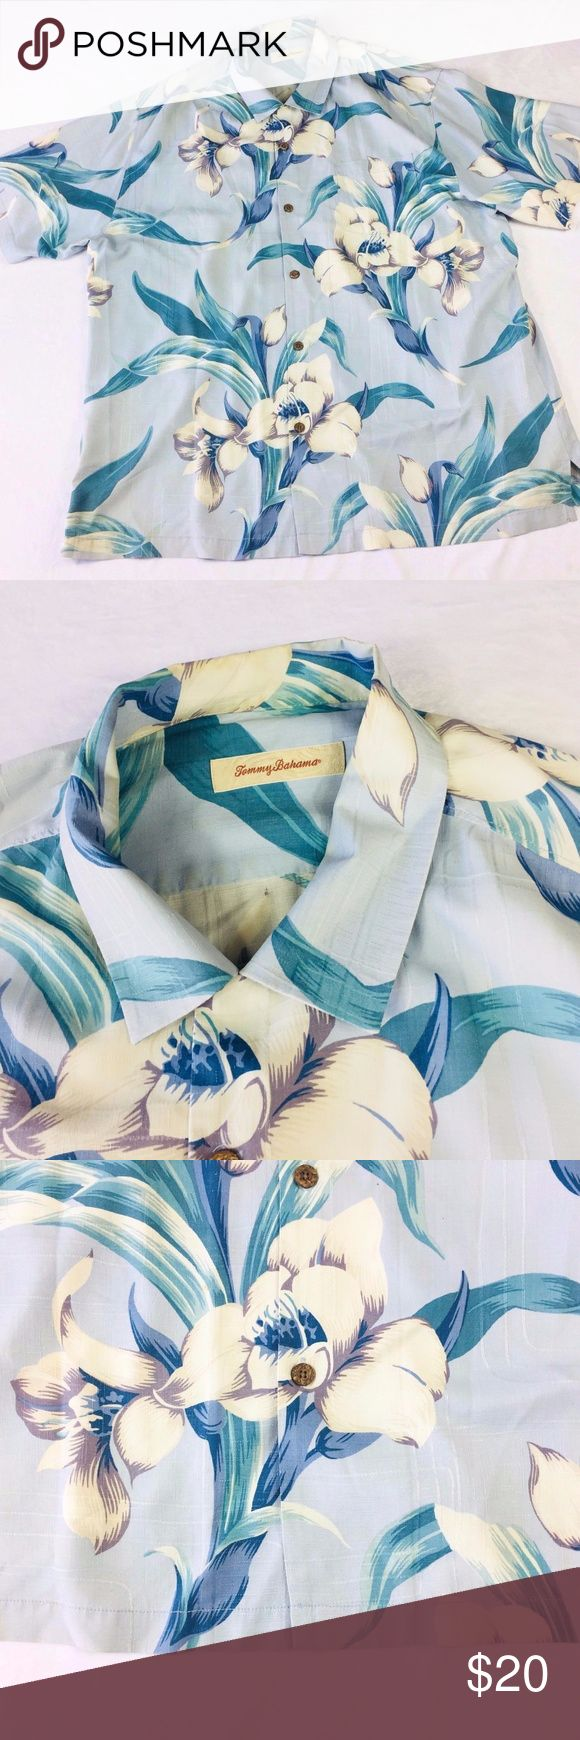 """Tommy Bahama 100% Silk Hawaiian Camp Shirt XXL ** MINOR FLAWS -- READ DESCRIPTION**   Size: 2XL Color: Multi-Colored -- main color is blue with some ivory and purple and green   Condition: Pre-owned - couple of spots w/ stains on front (see photos)  Measurements (in inches): *All measurements are taken with garment laying flat and are approximate in number*  Chest (armpit to armpit): 27.5""""  Length (top of shoulder to hem): 31""""  Sleeve Length (shoulder seam to cuff): 11.5""""   P30 Tommy Bahama…"""